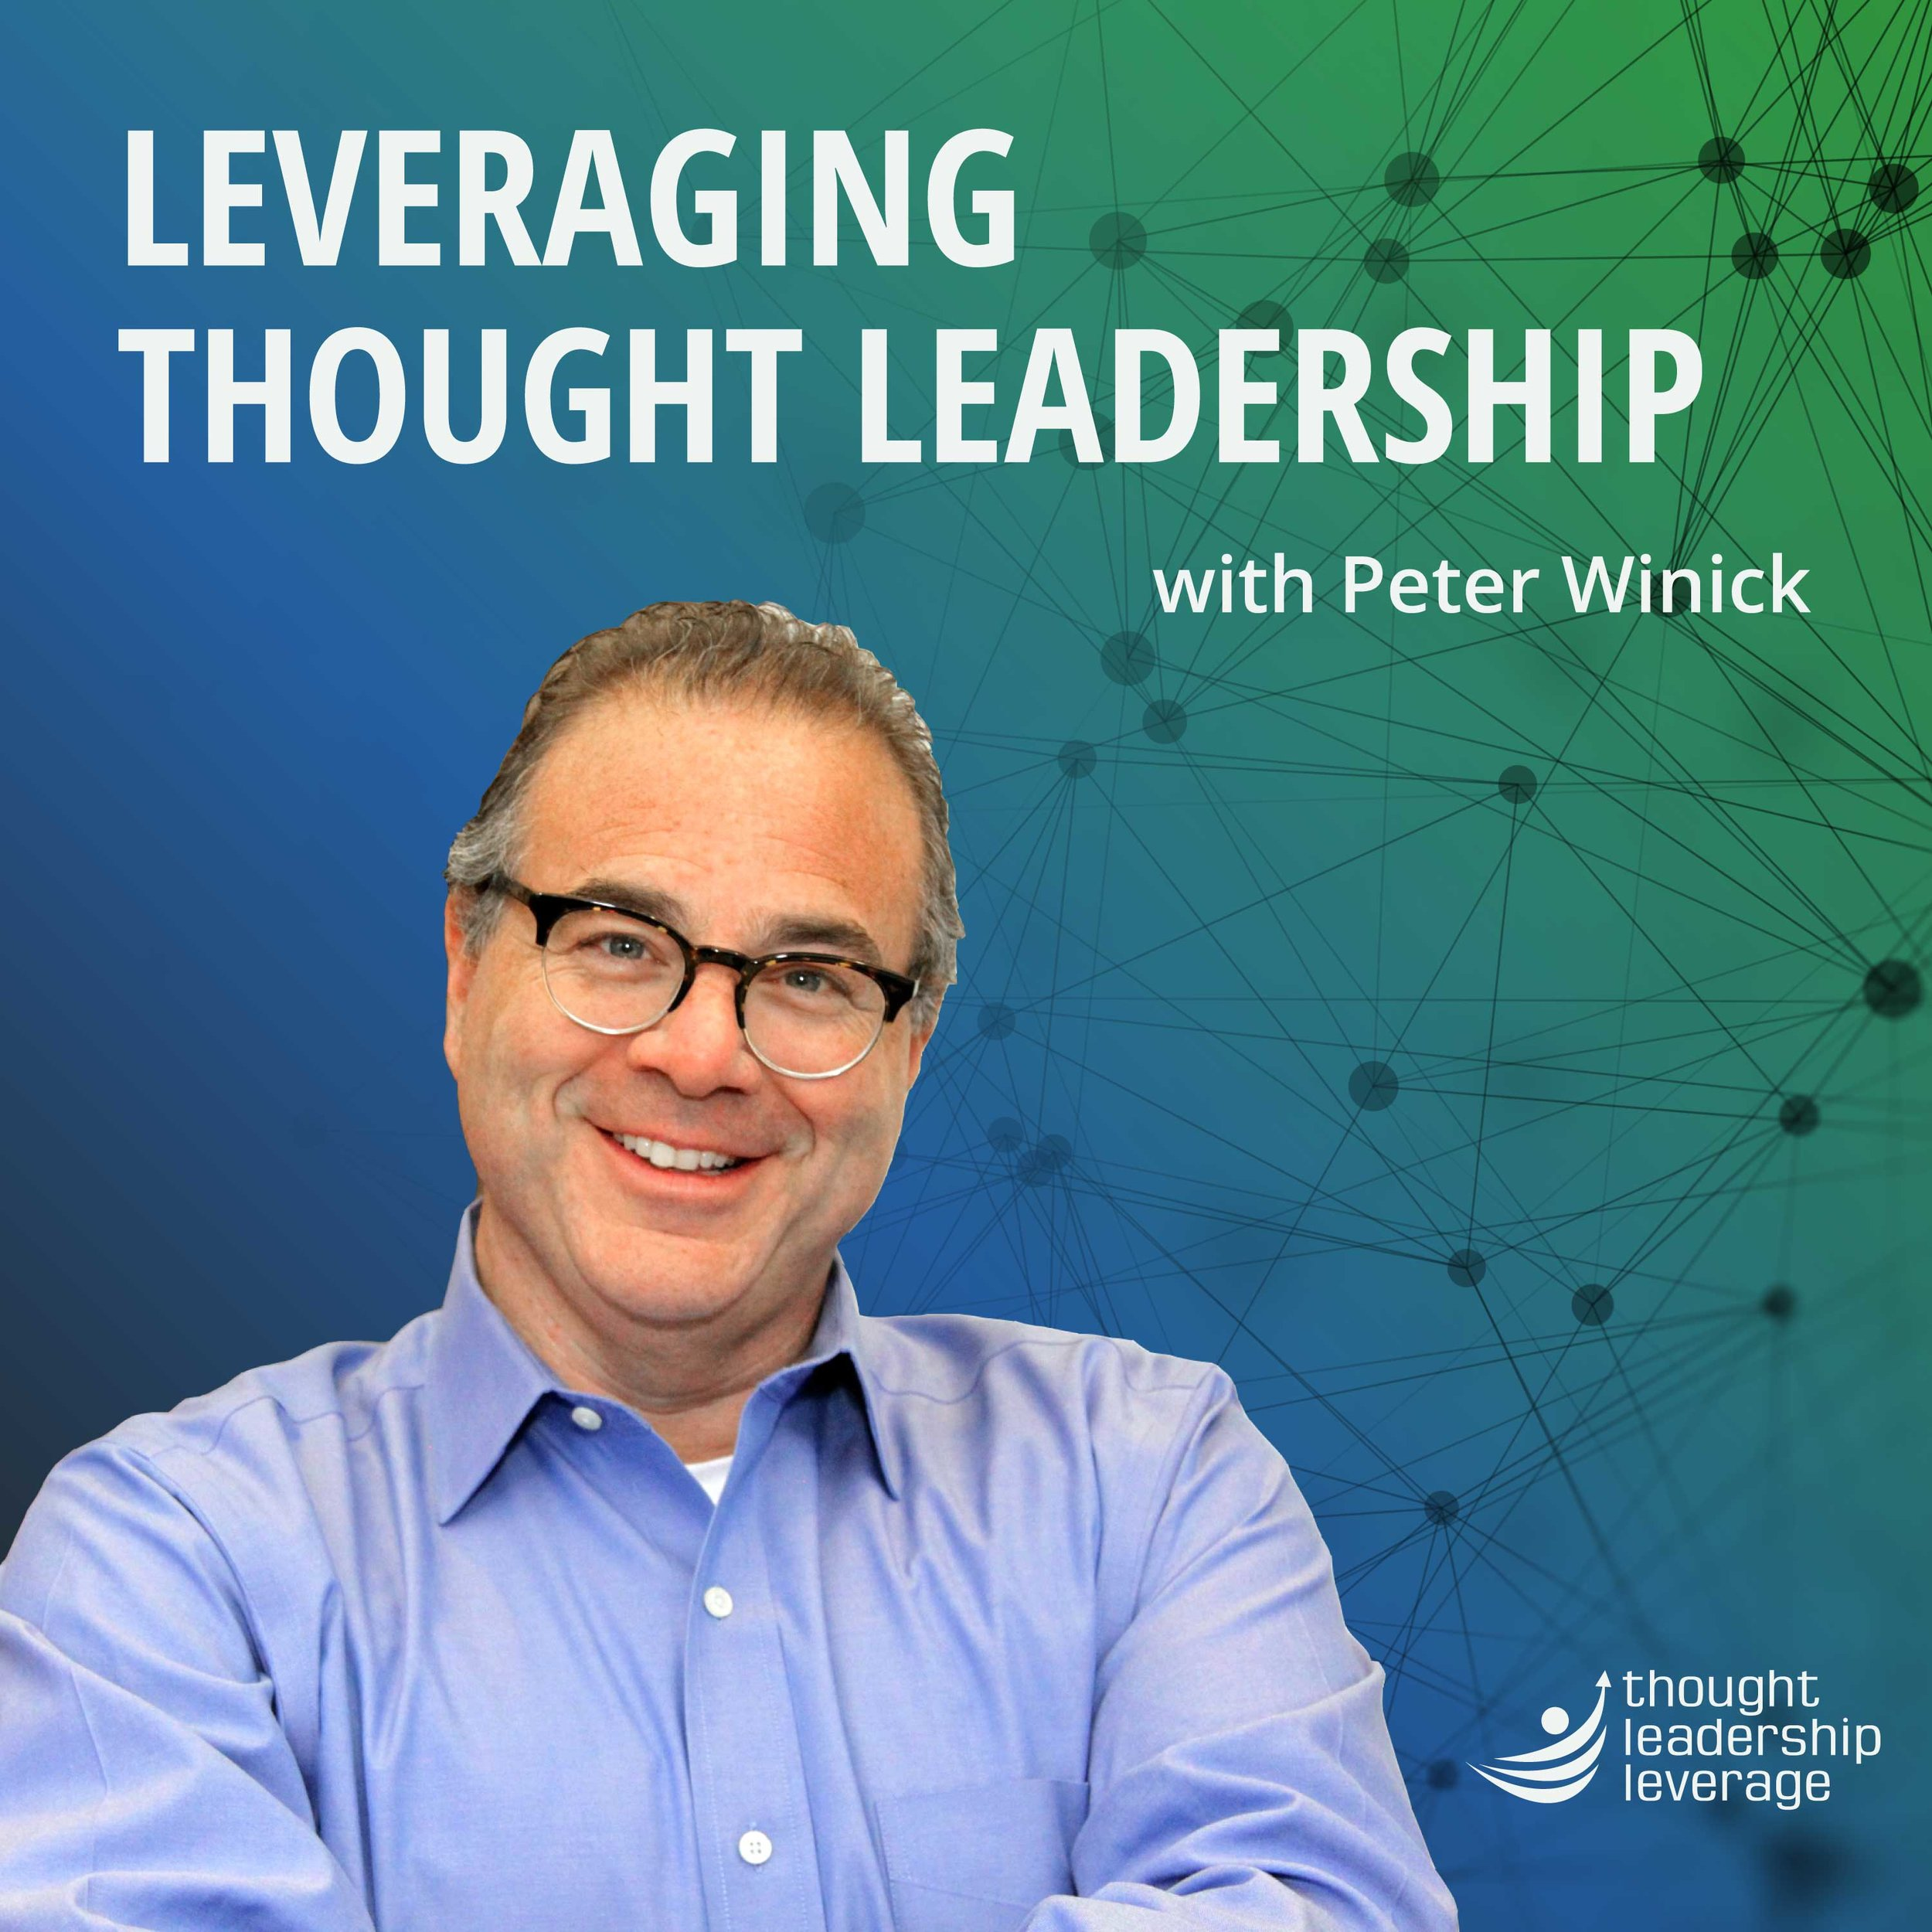 Leveraging-Thought-Leadership-with-Peter-Winick-Itunes.jpg